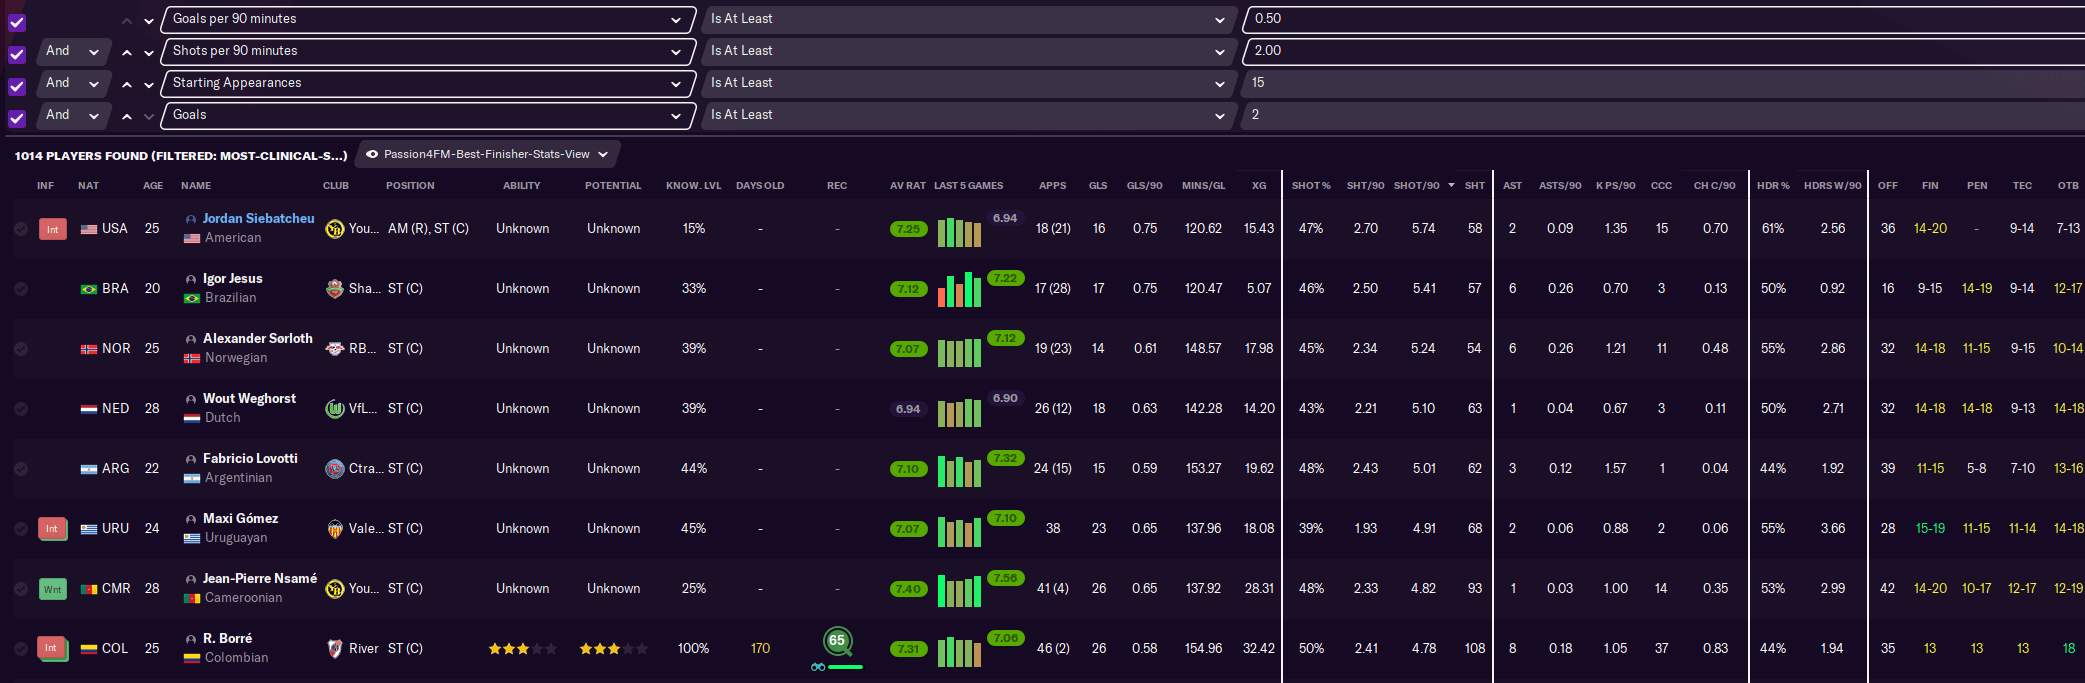 Search filter most clinical forwards